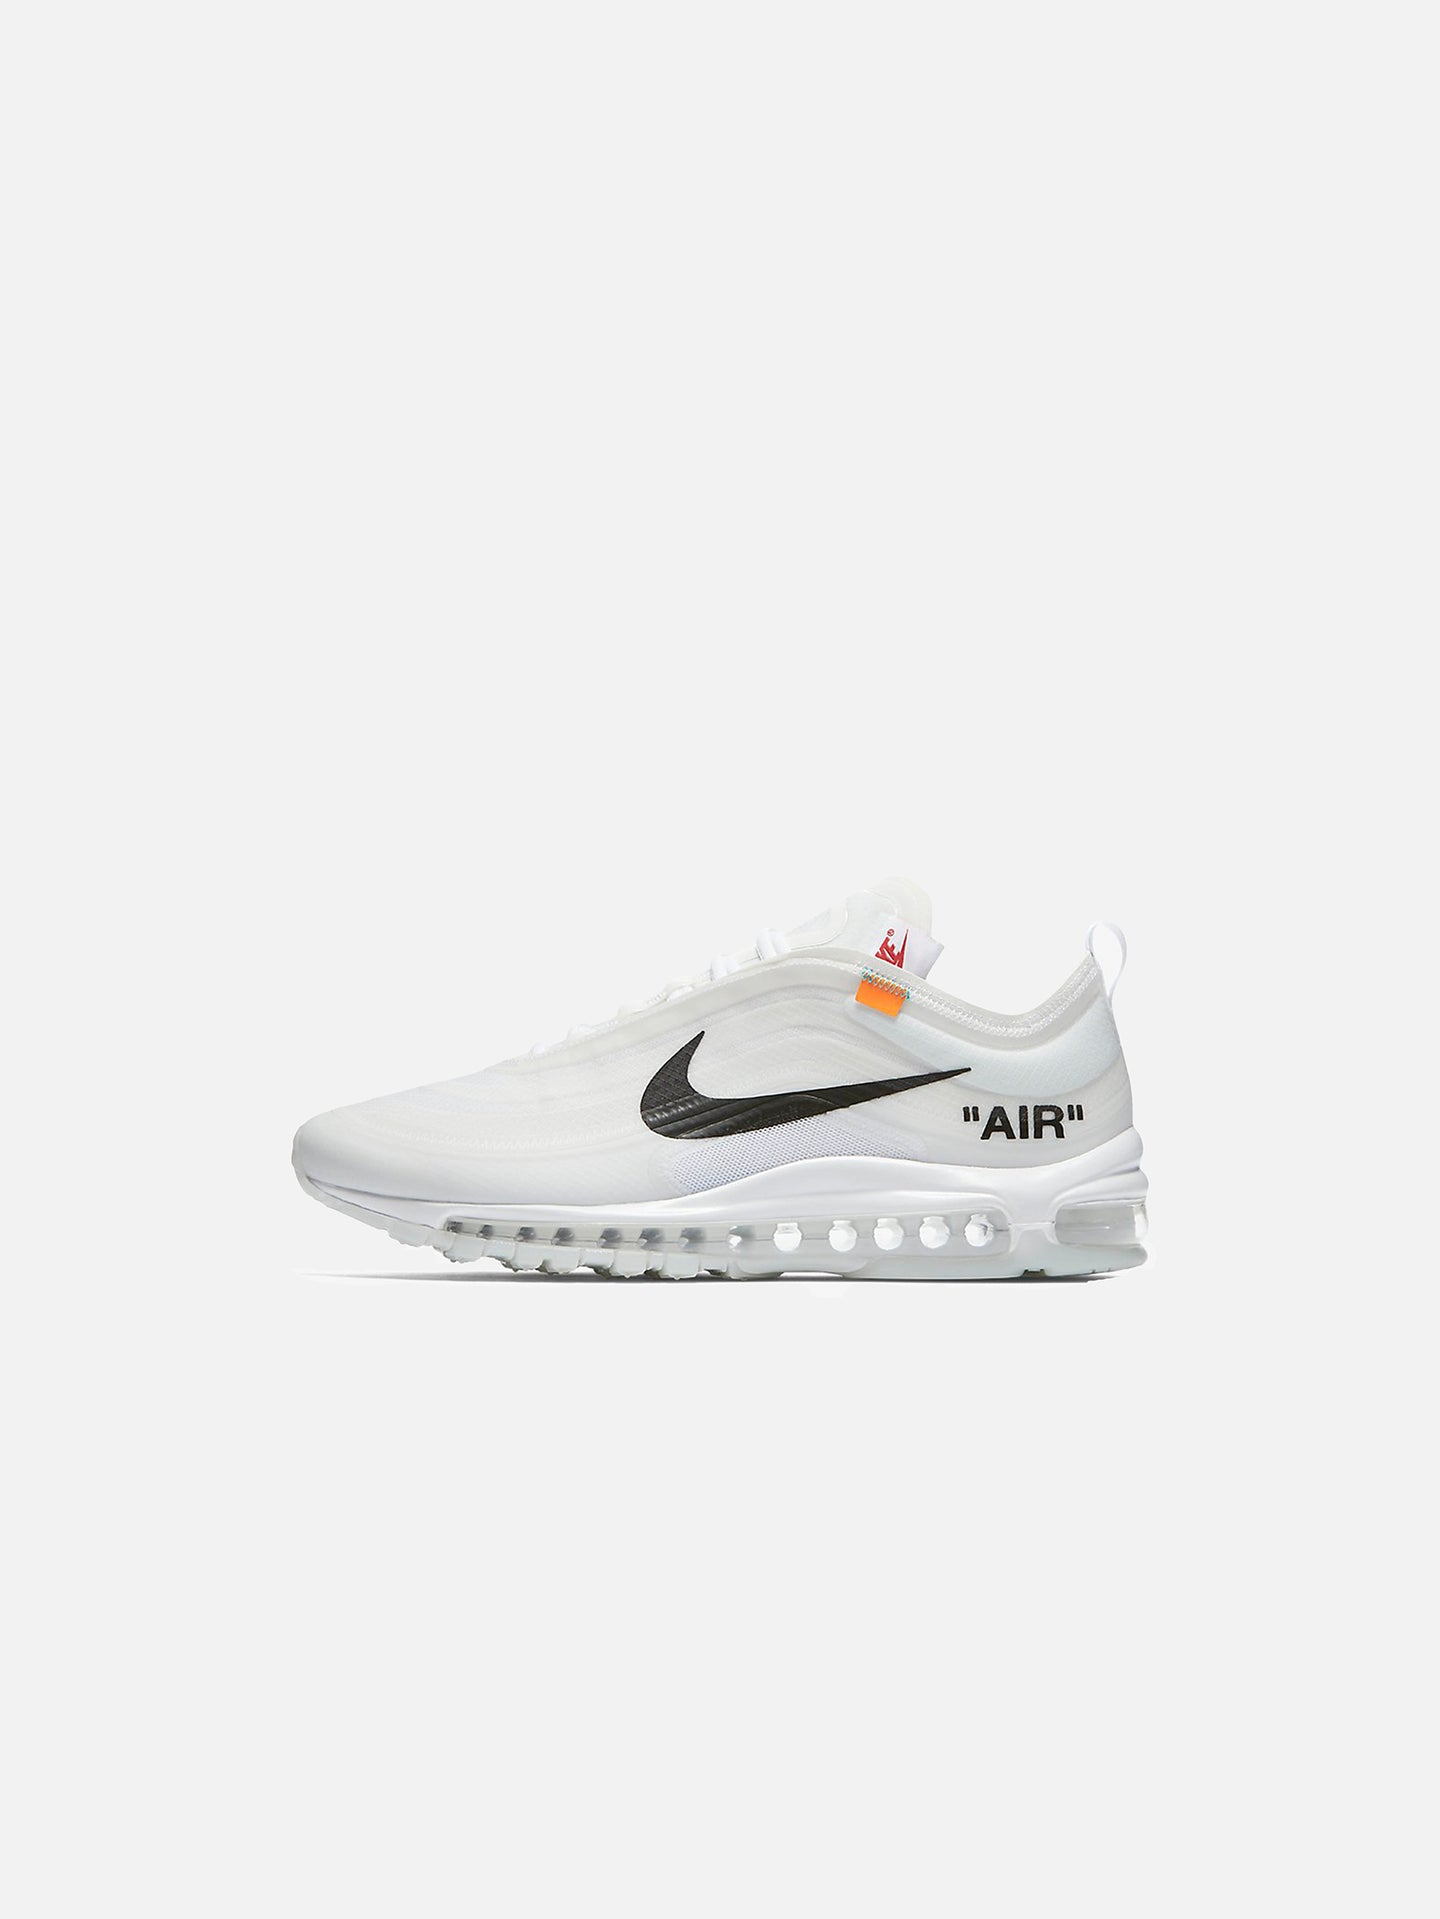 x OFF-WHITE™ AIR MAX 97 OG